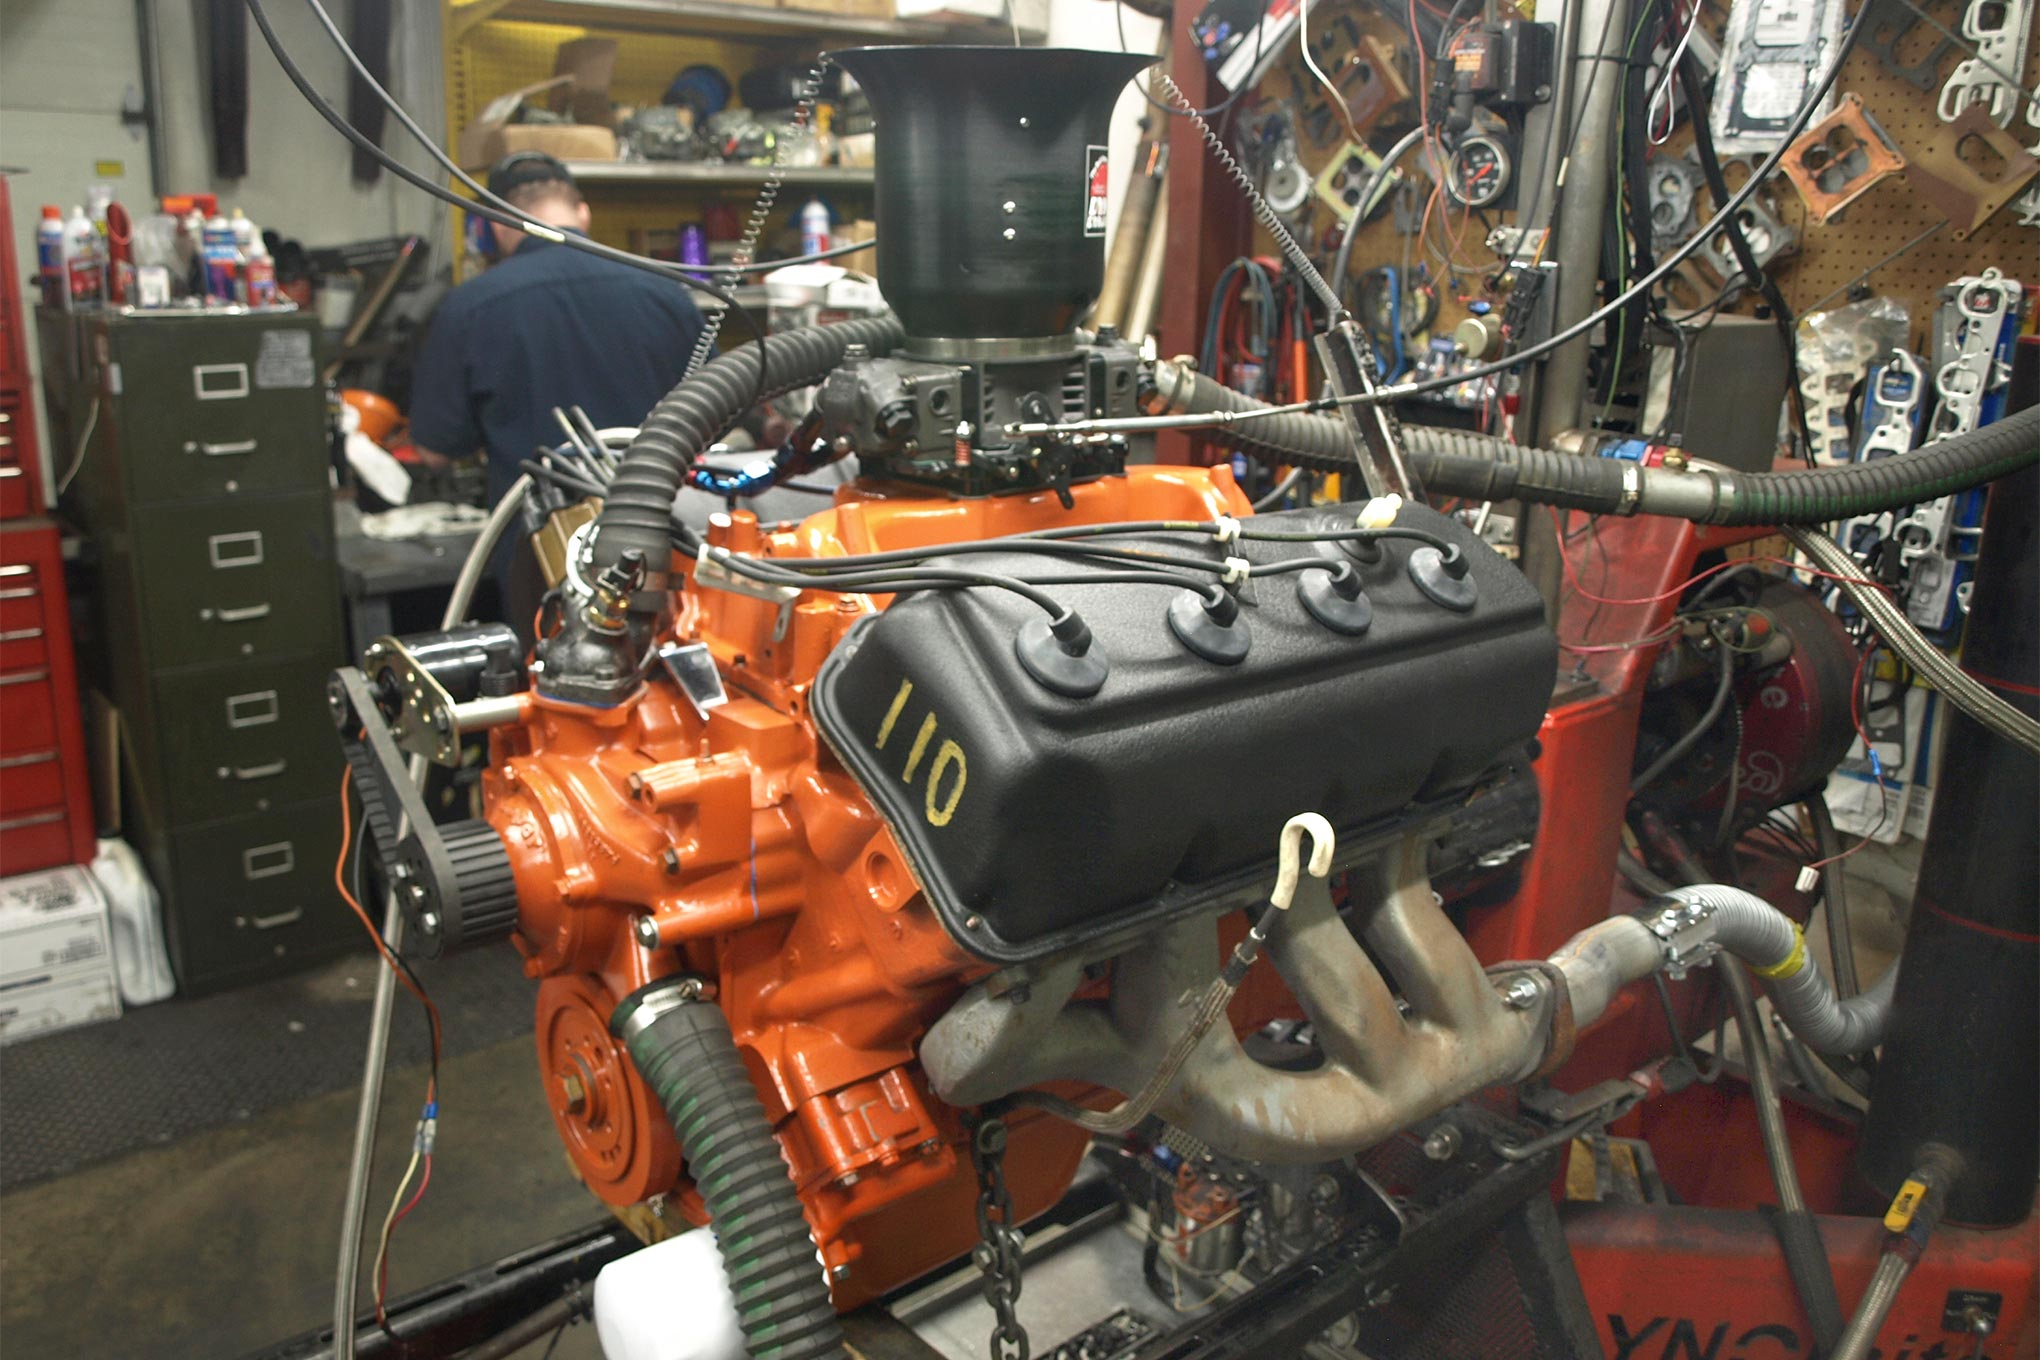 In baseline form, R.A.D. tested with the M1, a Holley HP series 850 and reproduction Street Hemi exhaust manifolds. Everyone smiled when it made 555.8 hp at 6,100 rpm and 541.5 lb-ft at 4,000 rpm. We've got more cam, but otherwise this is basically stock stuff!